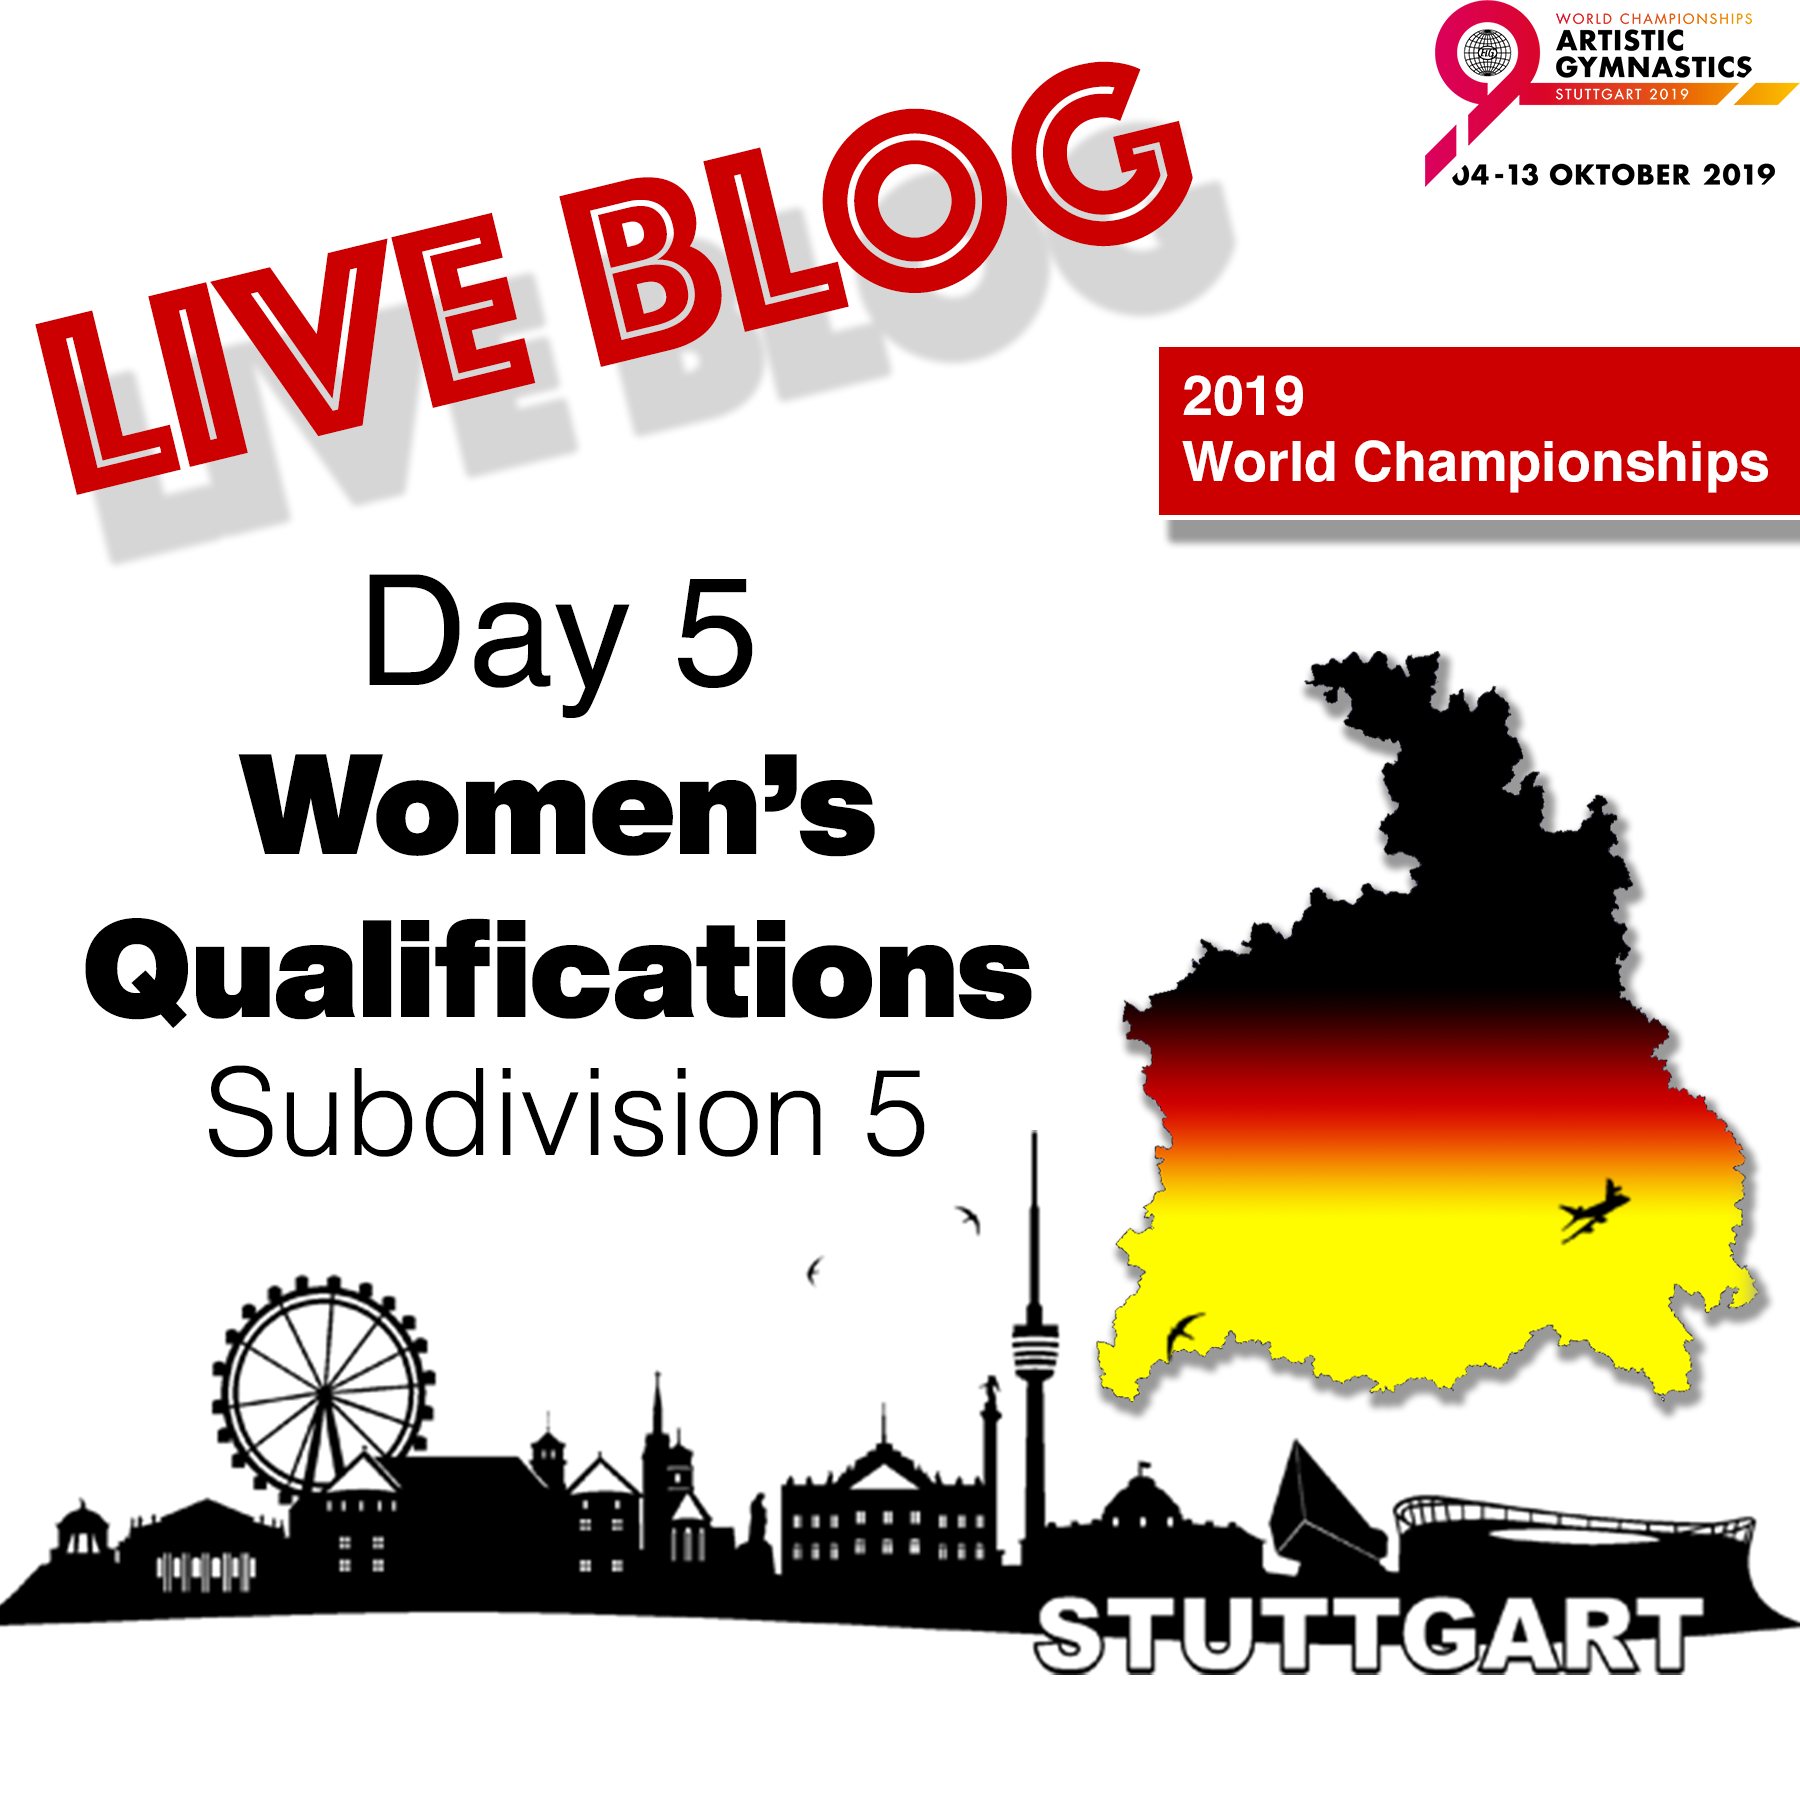 Live Blog: 2019 World Championships – WAG Qualifications – Sub Division 5, Oct. 4th